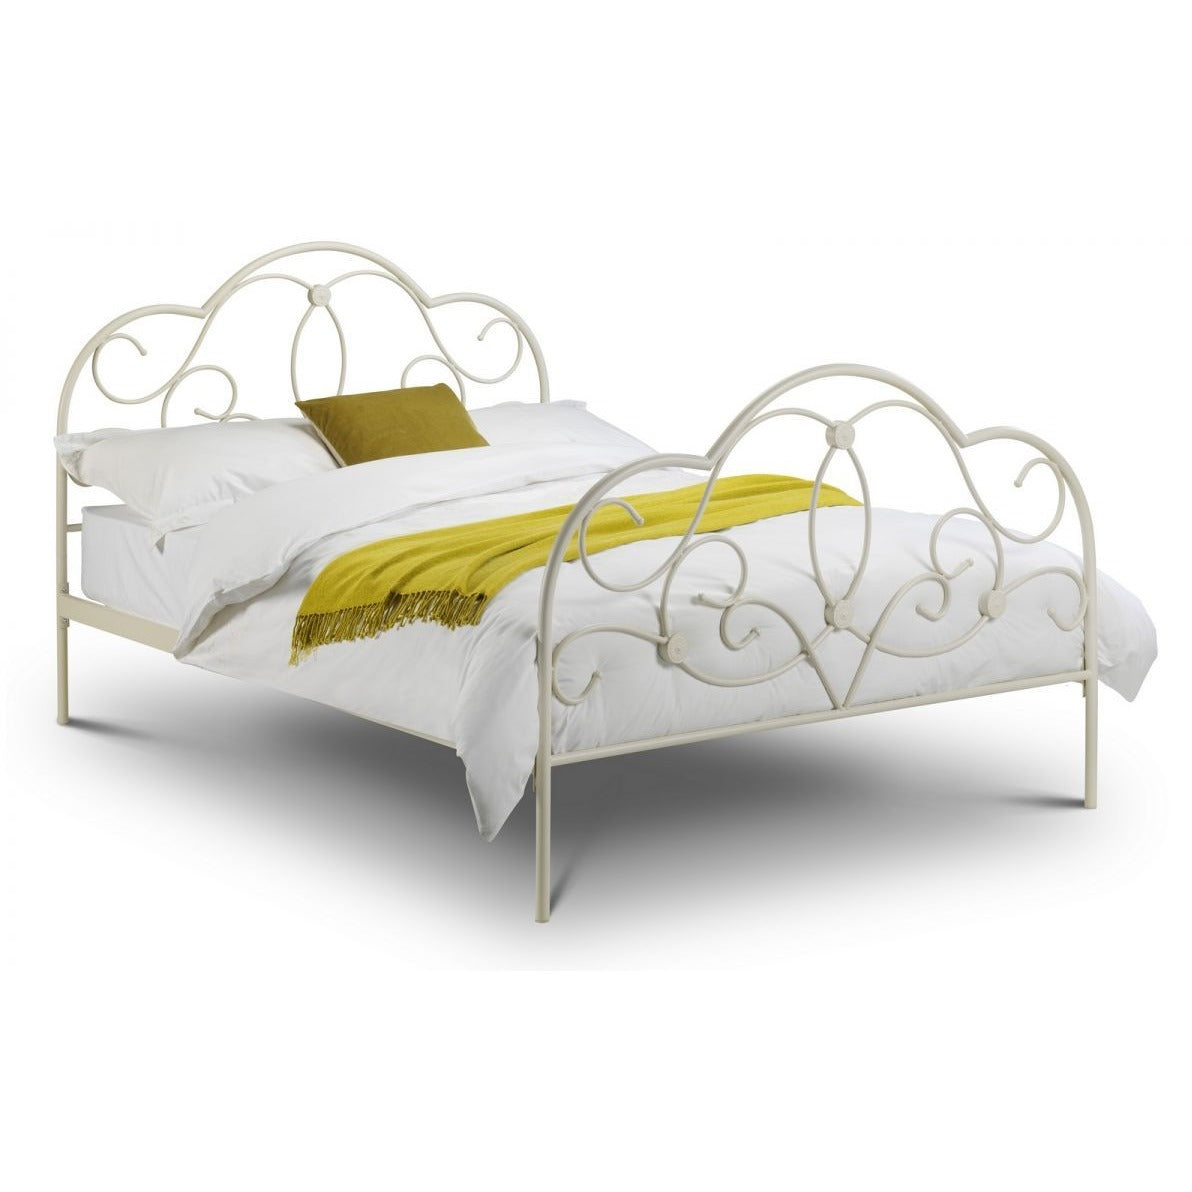 Arabella white metal Bed, 3 Sizes - Perfectly Home Interiors